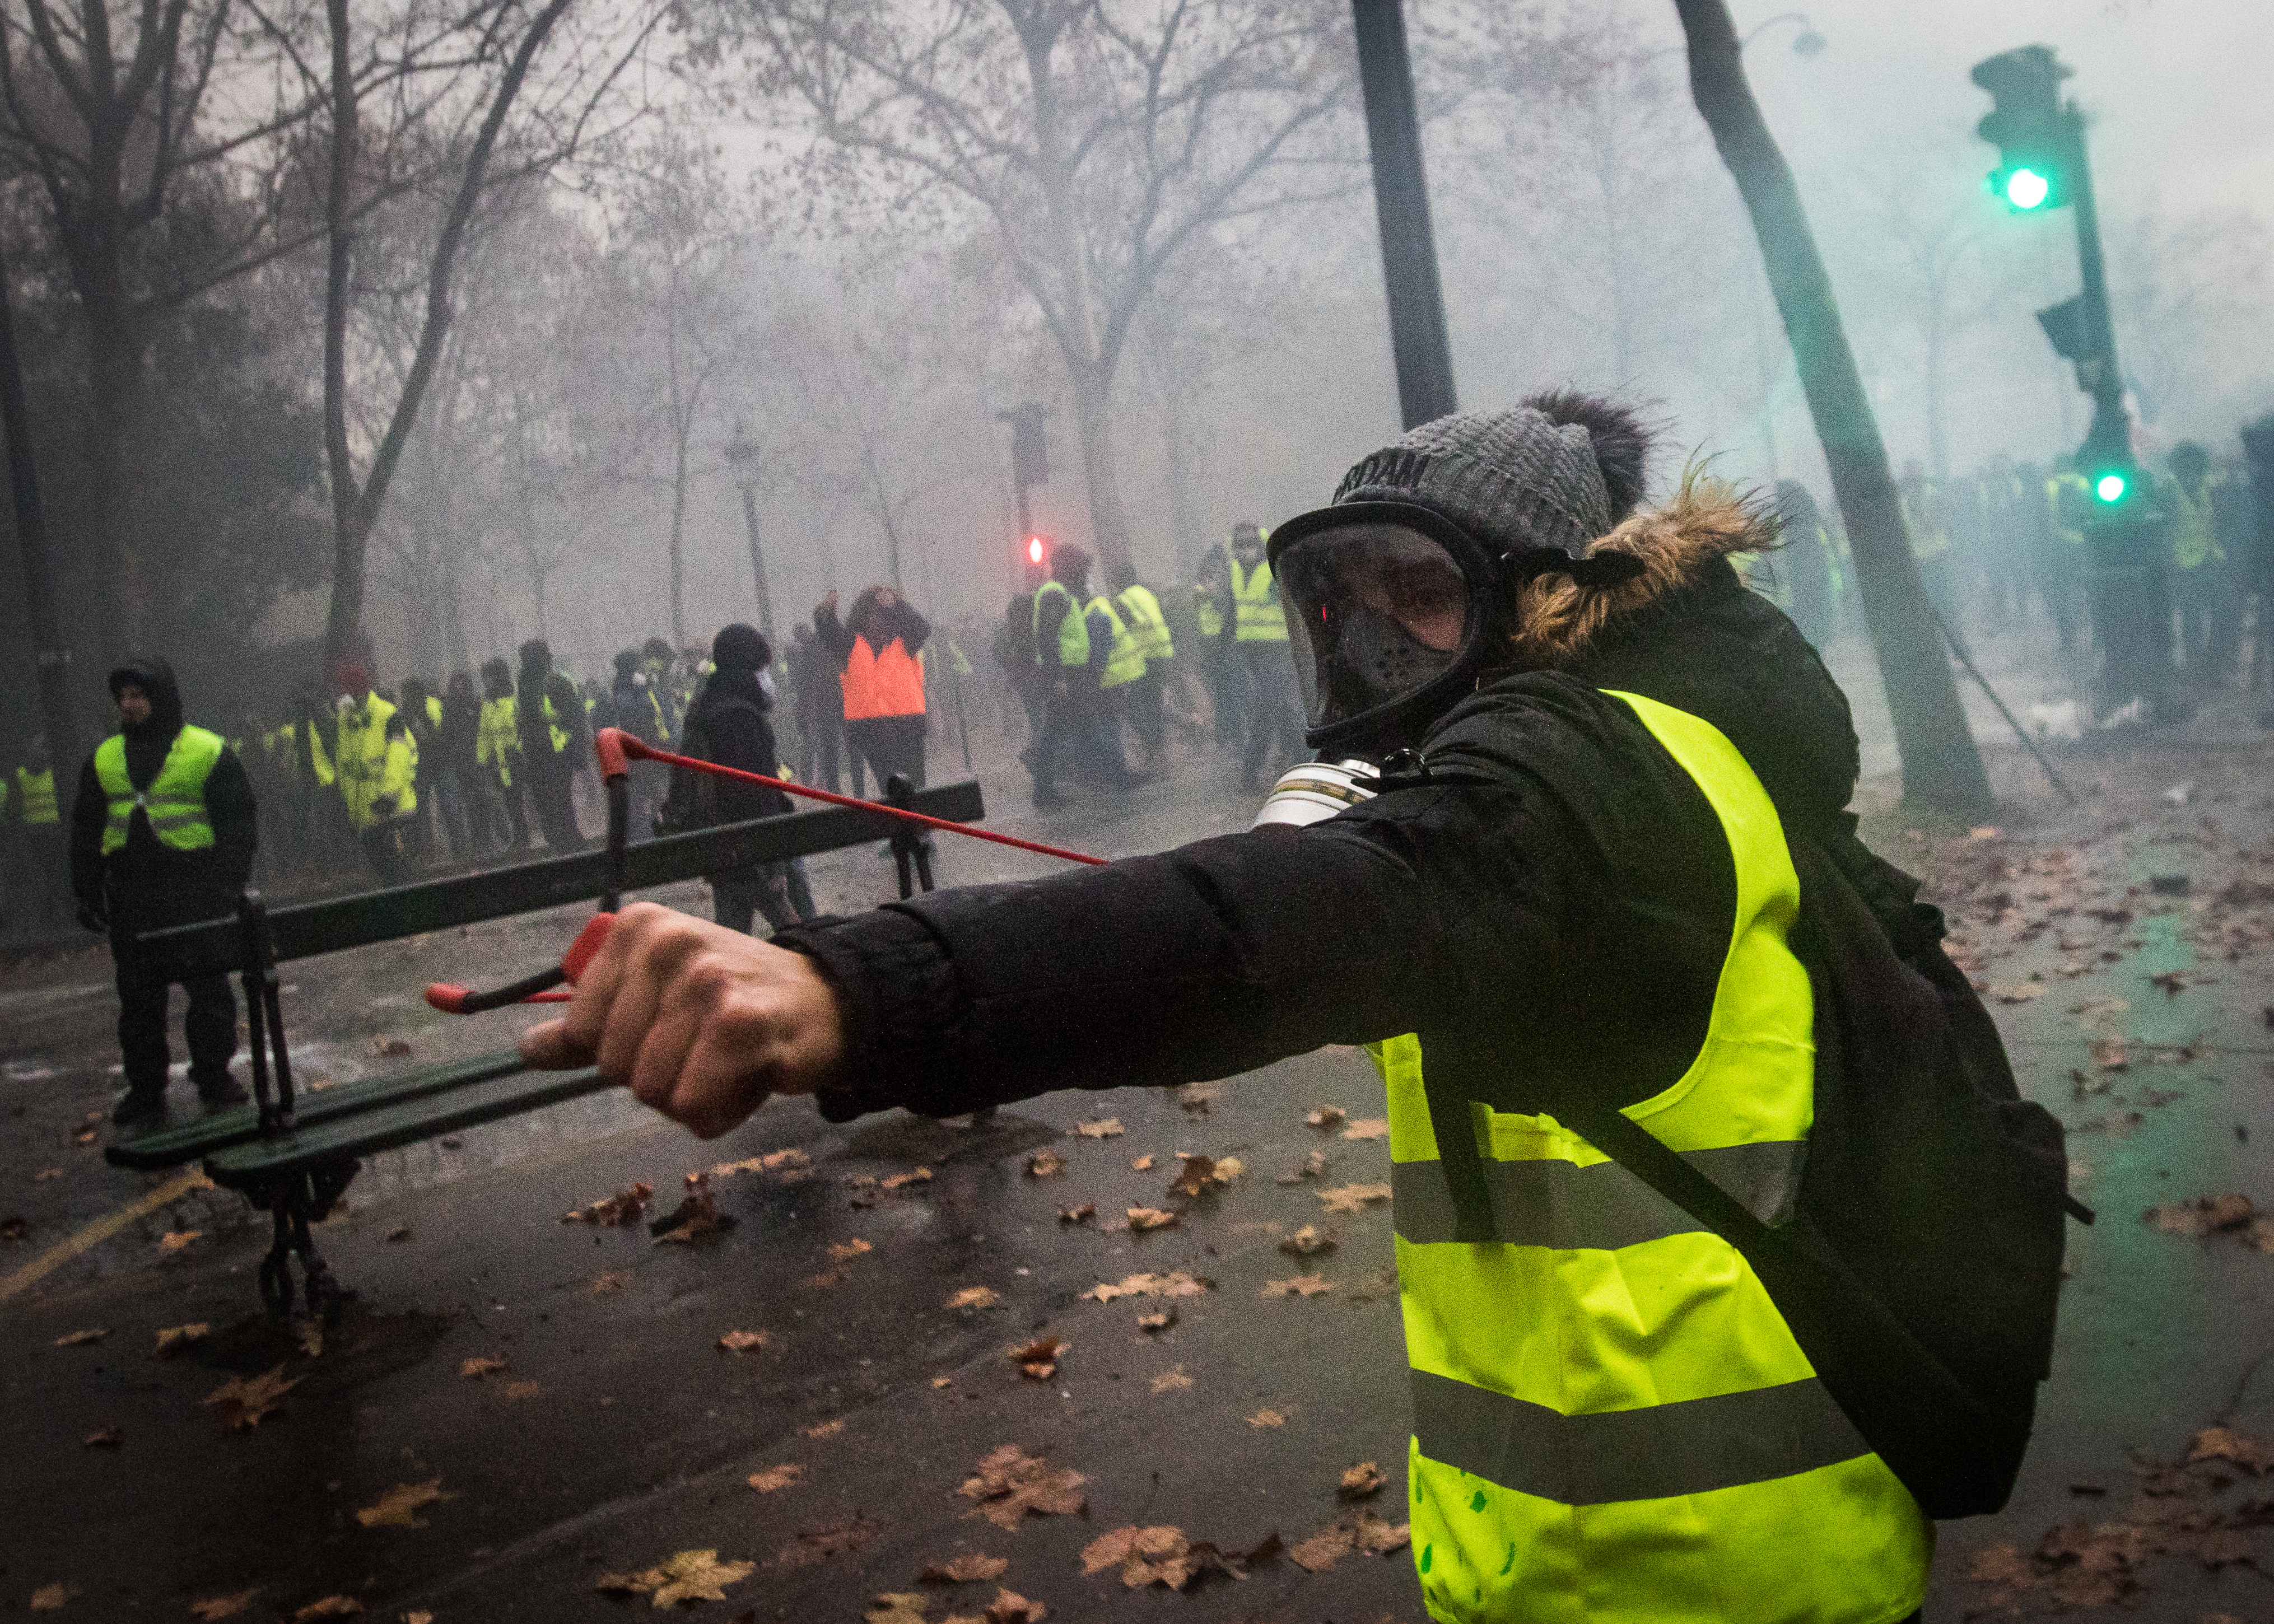 Movement of the yellow vests in Paris